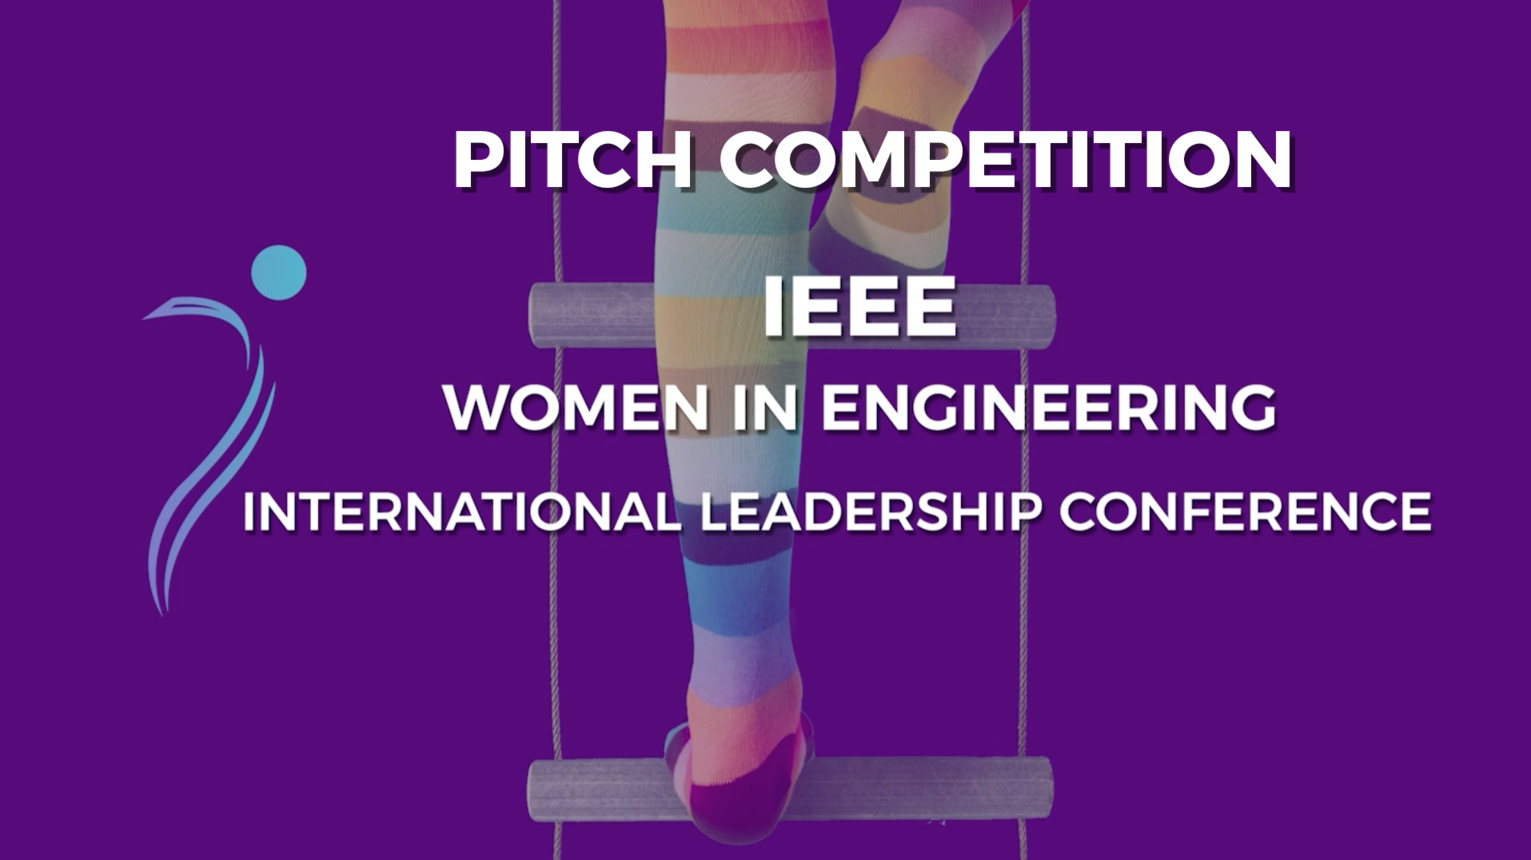 Pitch Competition at the IEEE Women in Engineering International Leadership Conference